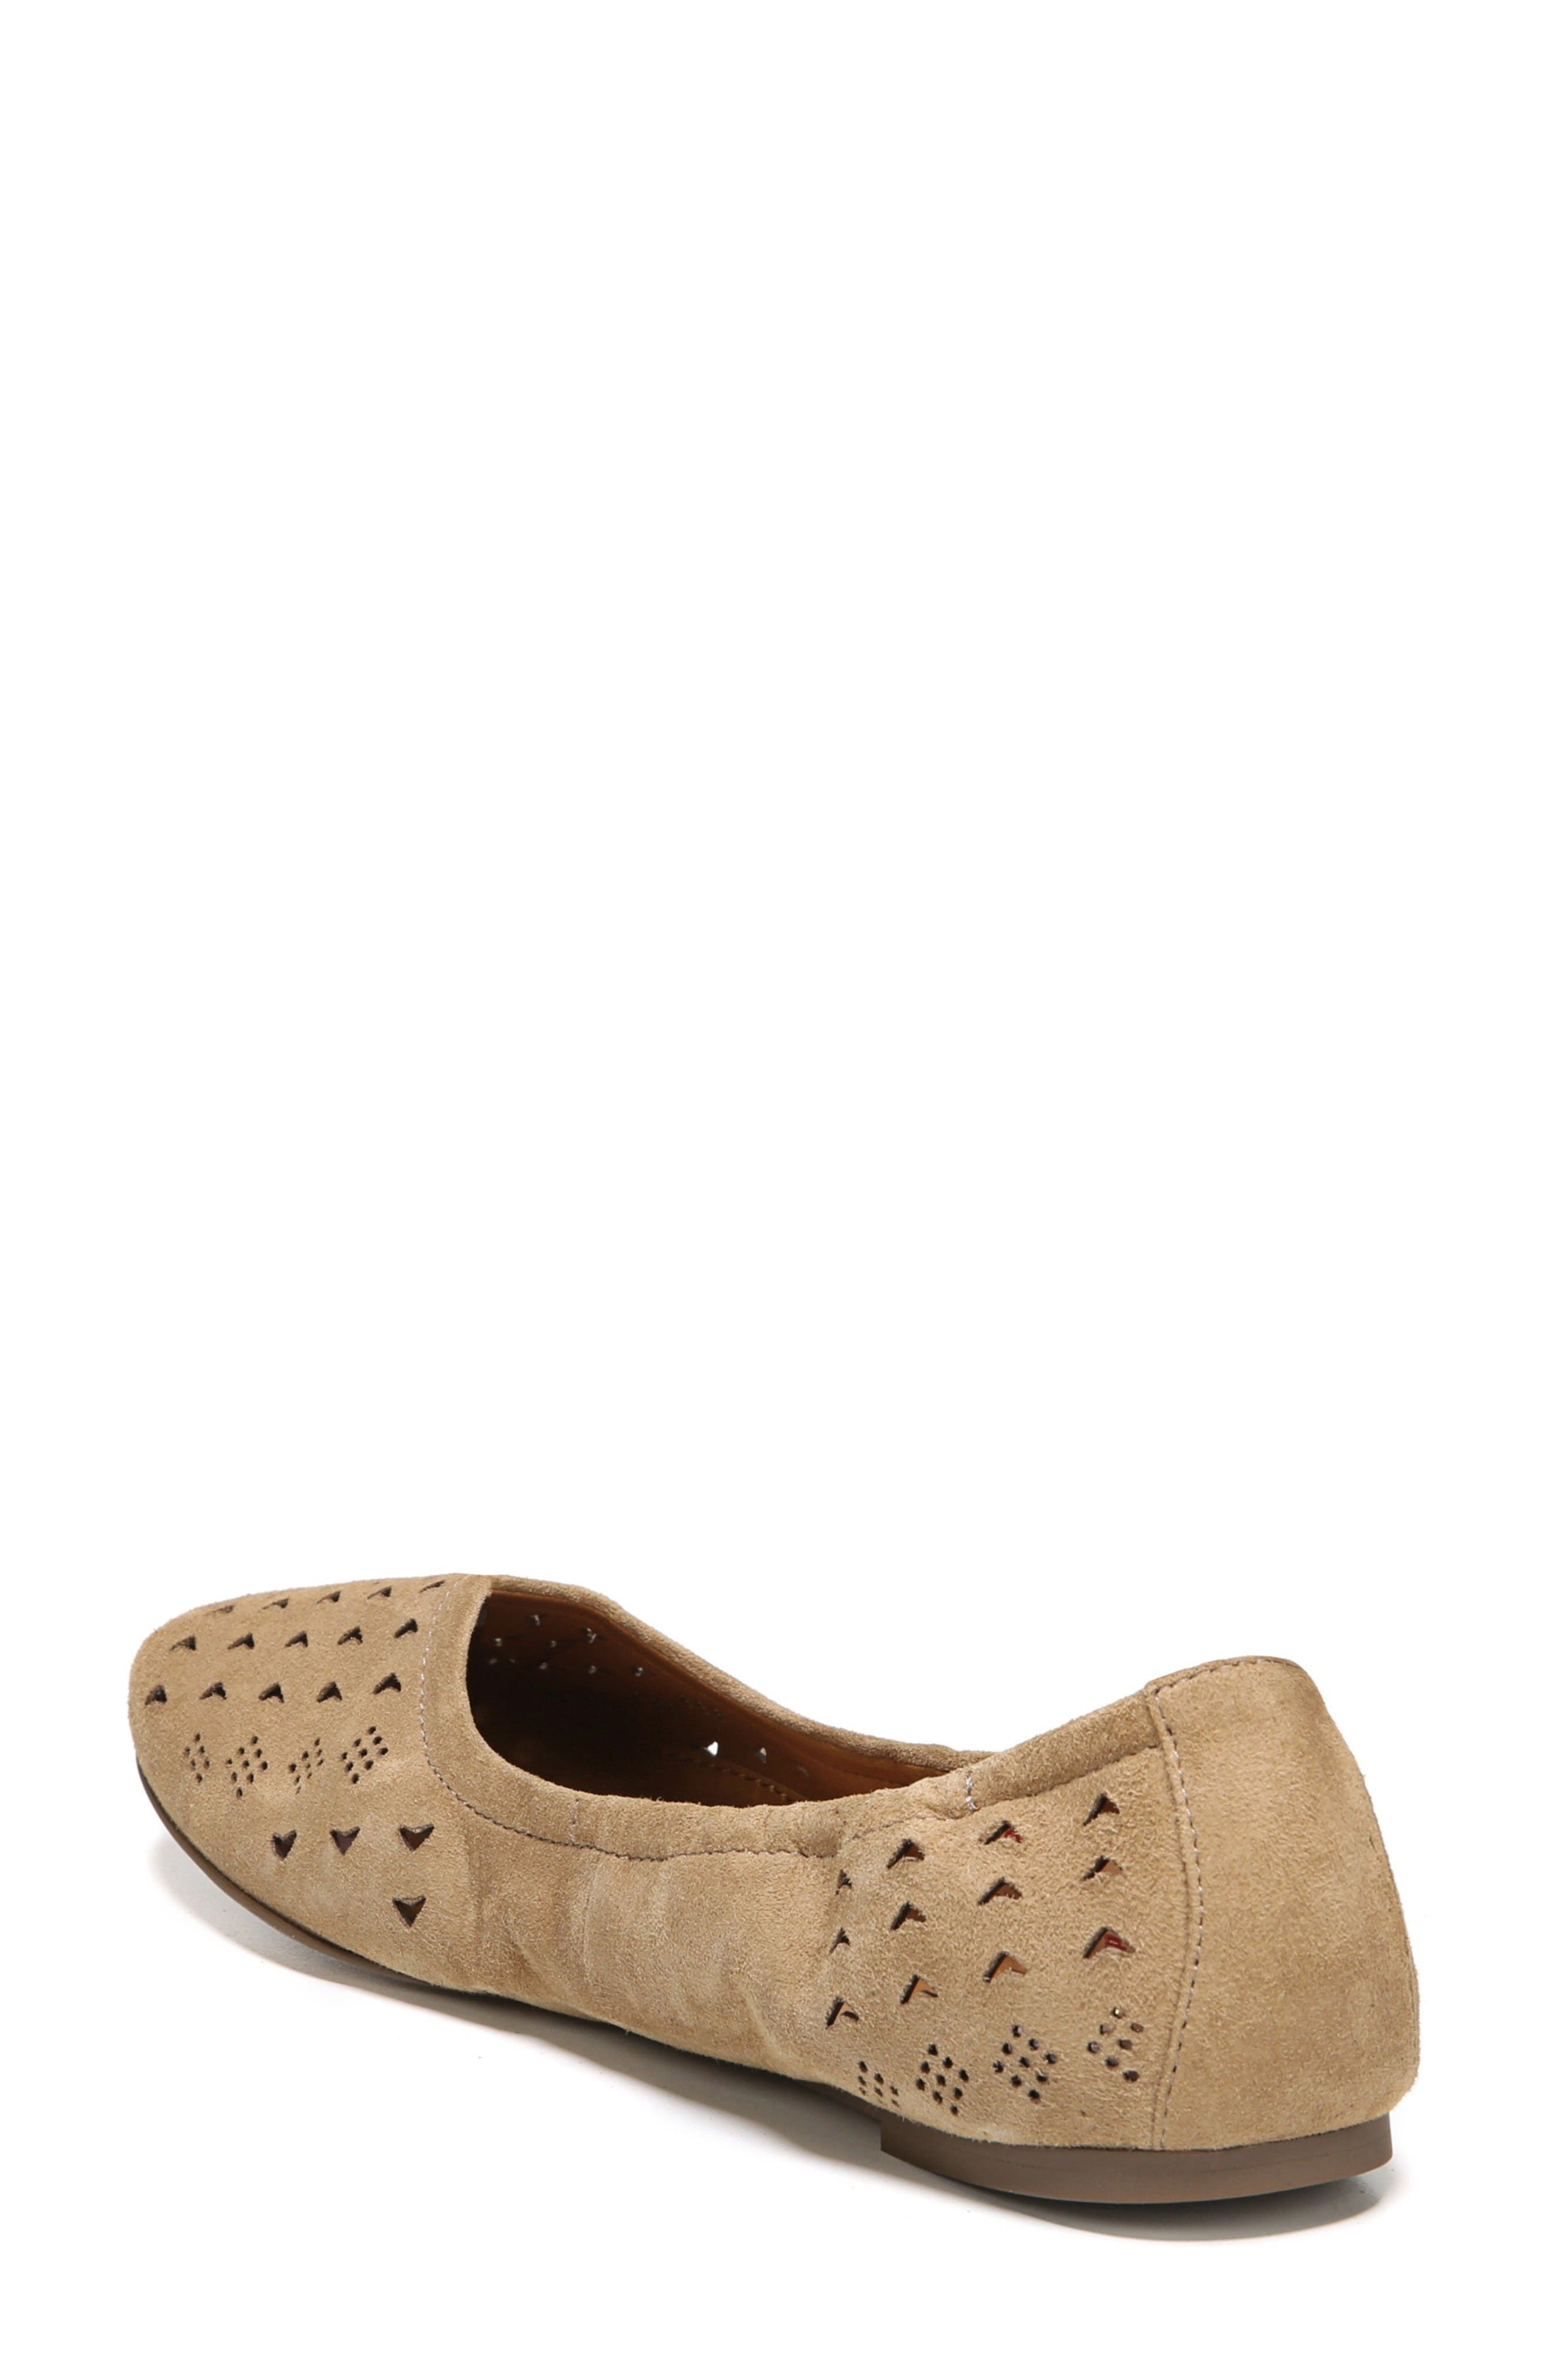 Alternate Image 2  - SARTO by Franco Sarto Brewer Perforated Ballet Flat (Women)